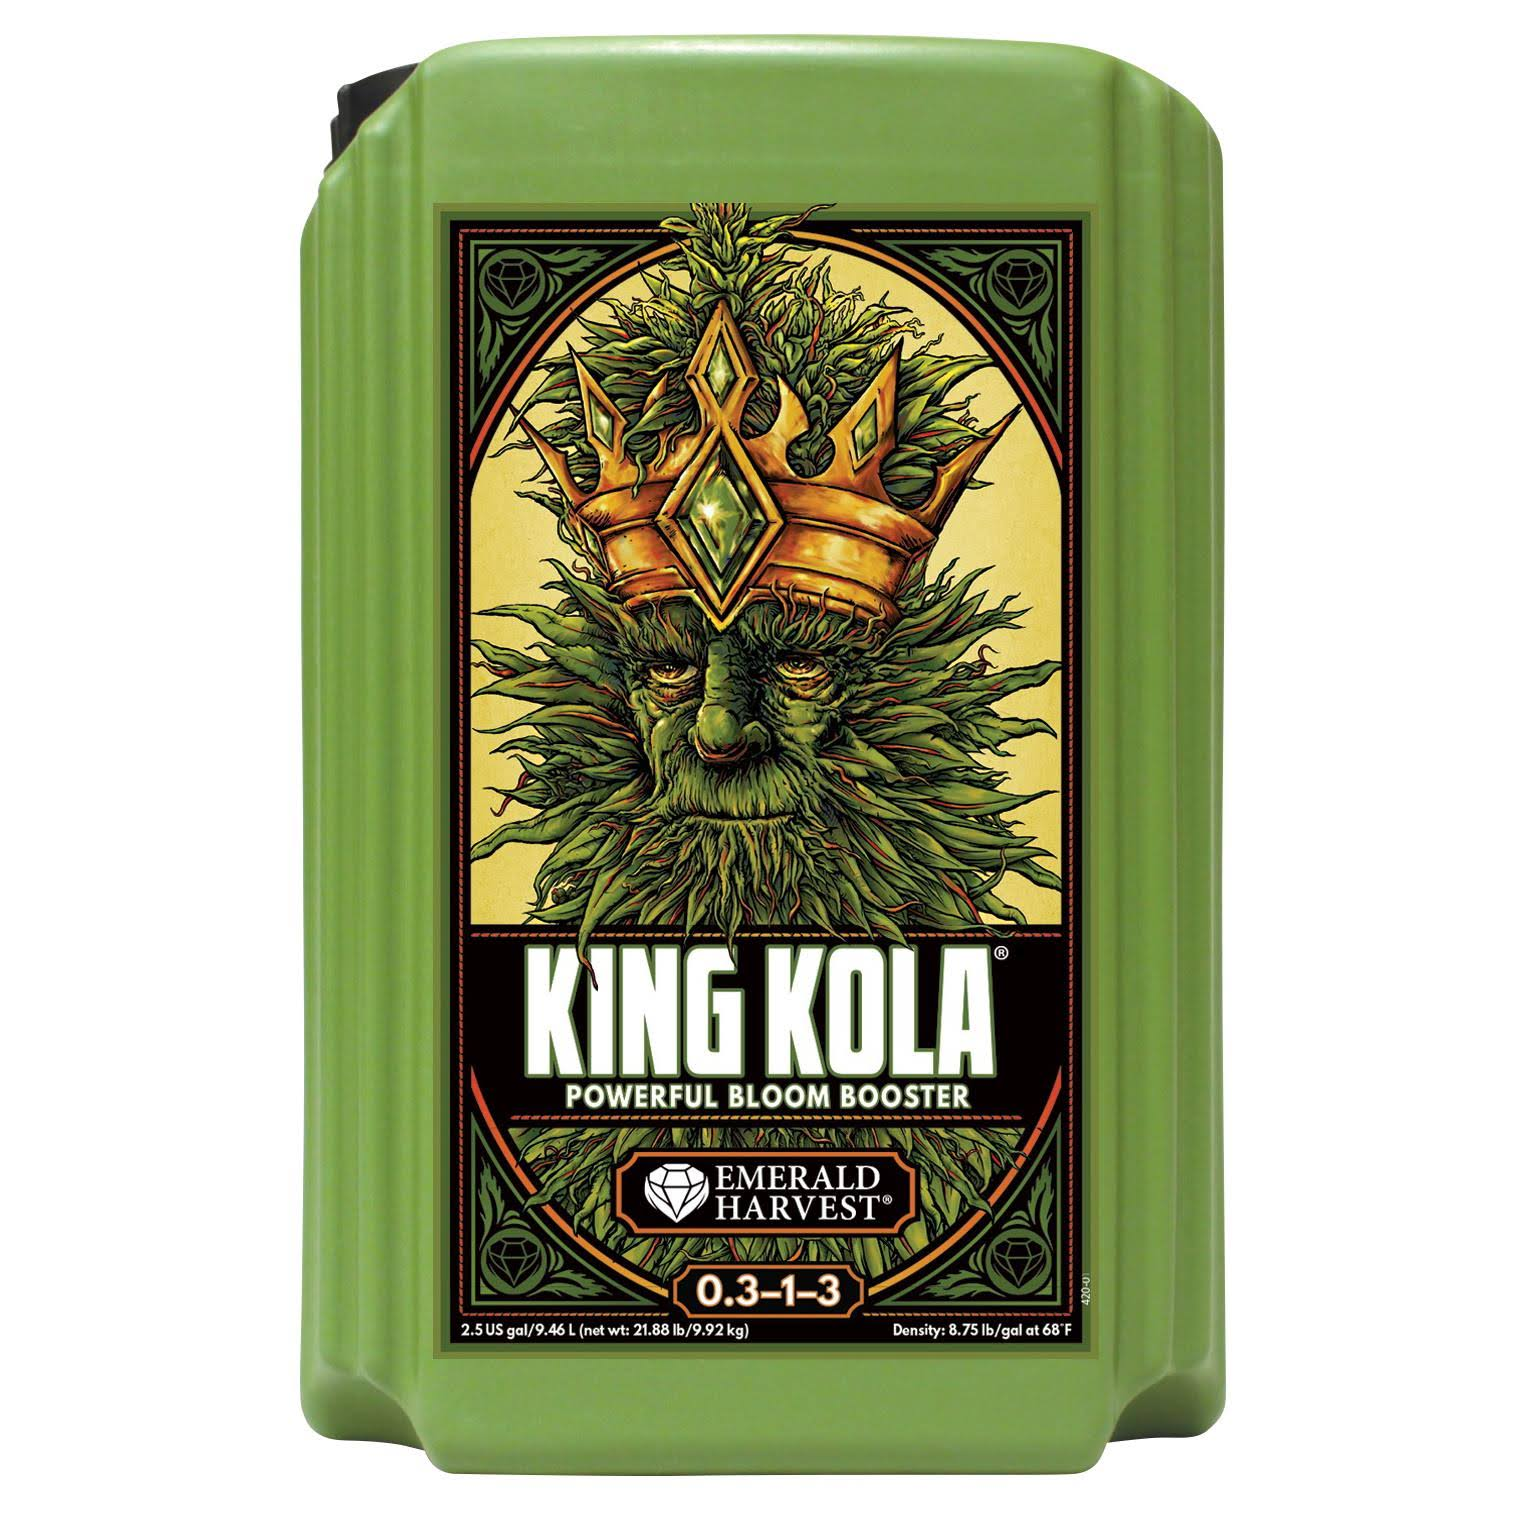 Emerald Harvest King Kola Fertilizer - 2.5gal